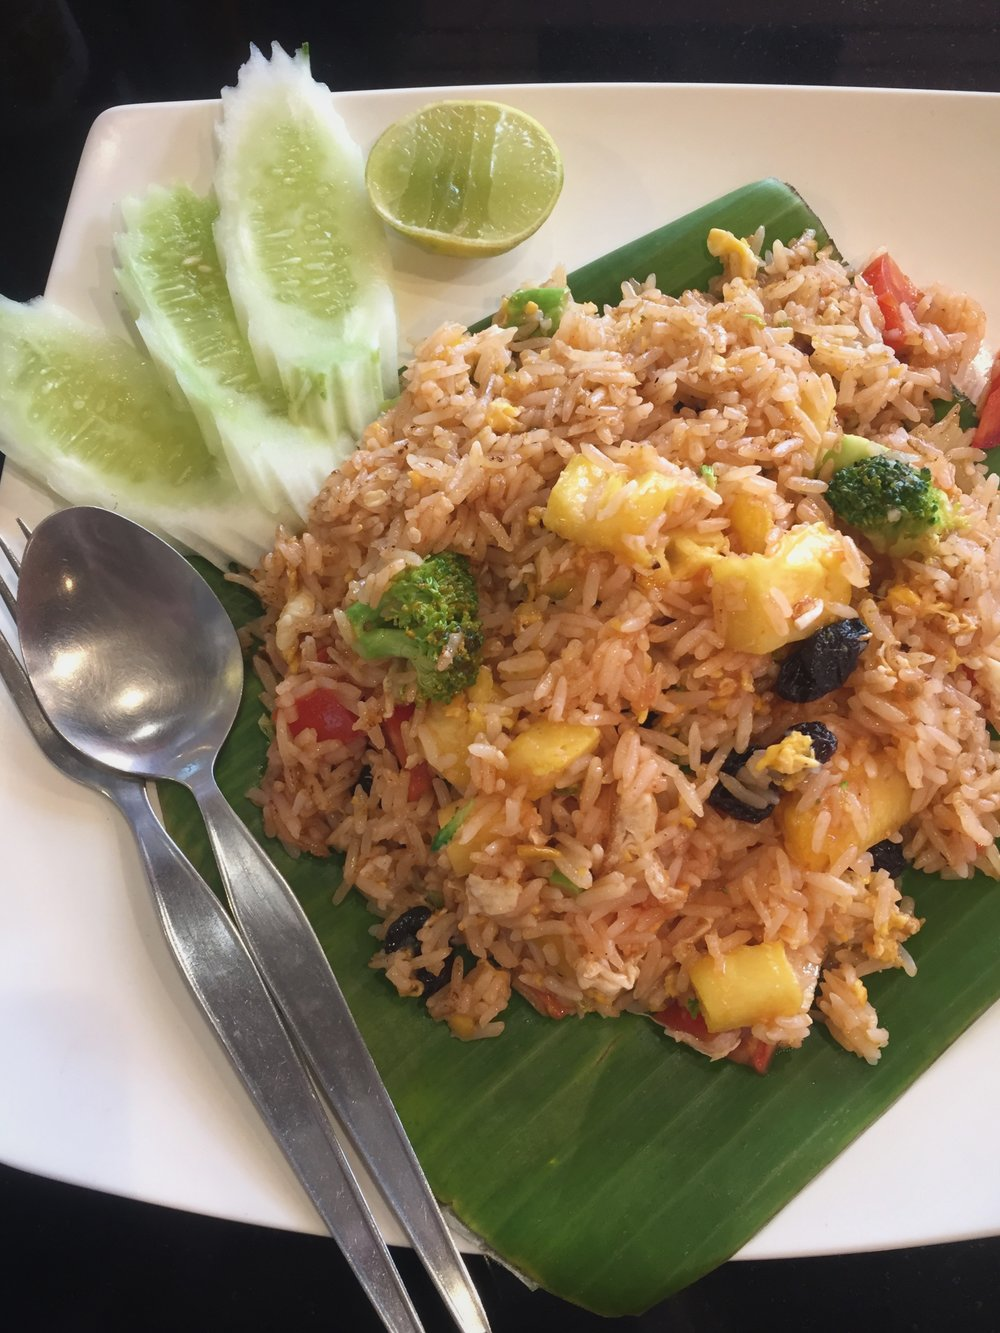 pineapple fried rice with vegetables (Bangkok)